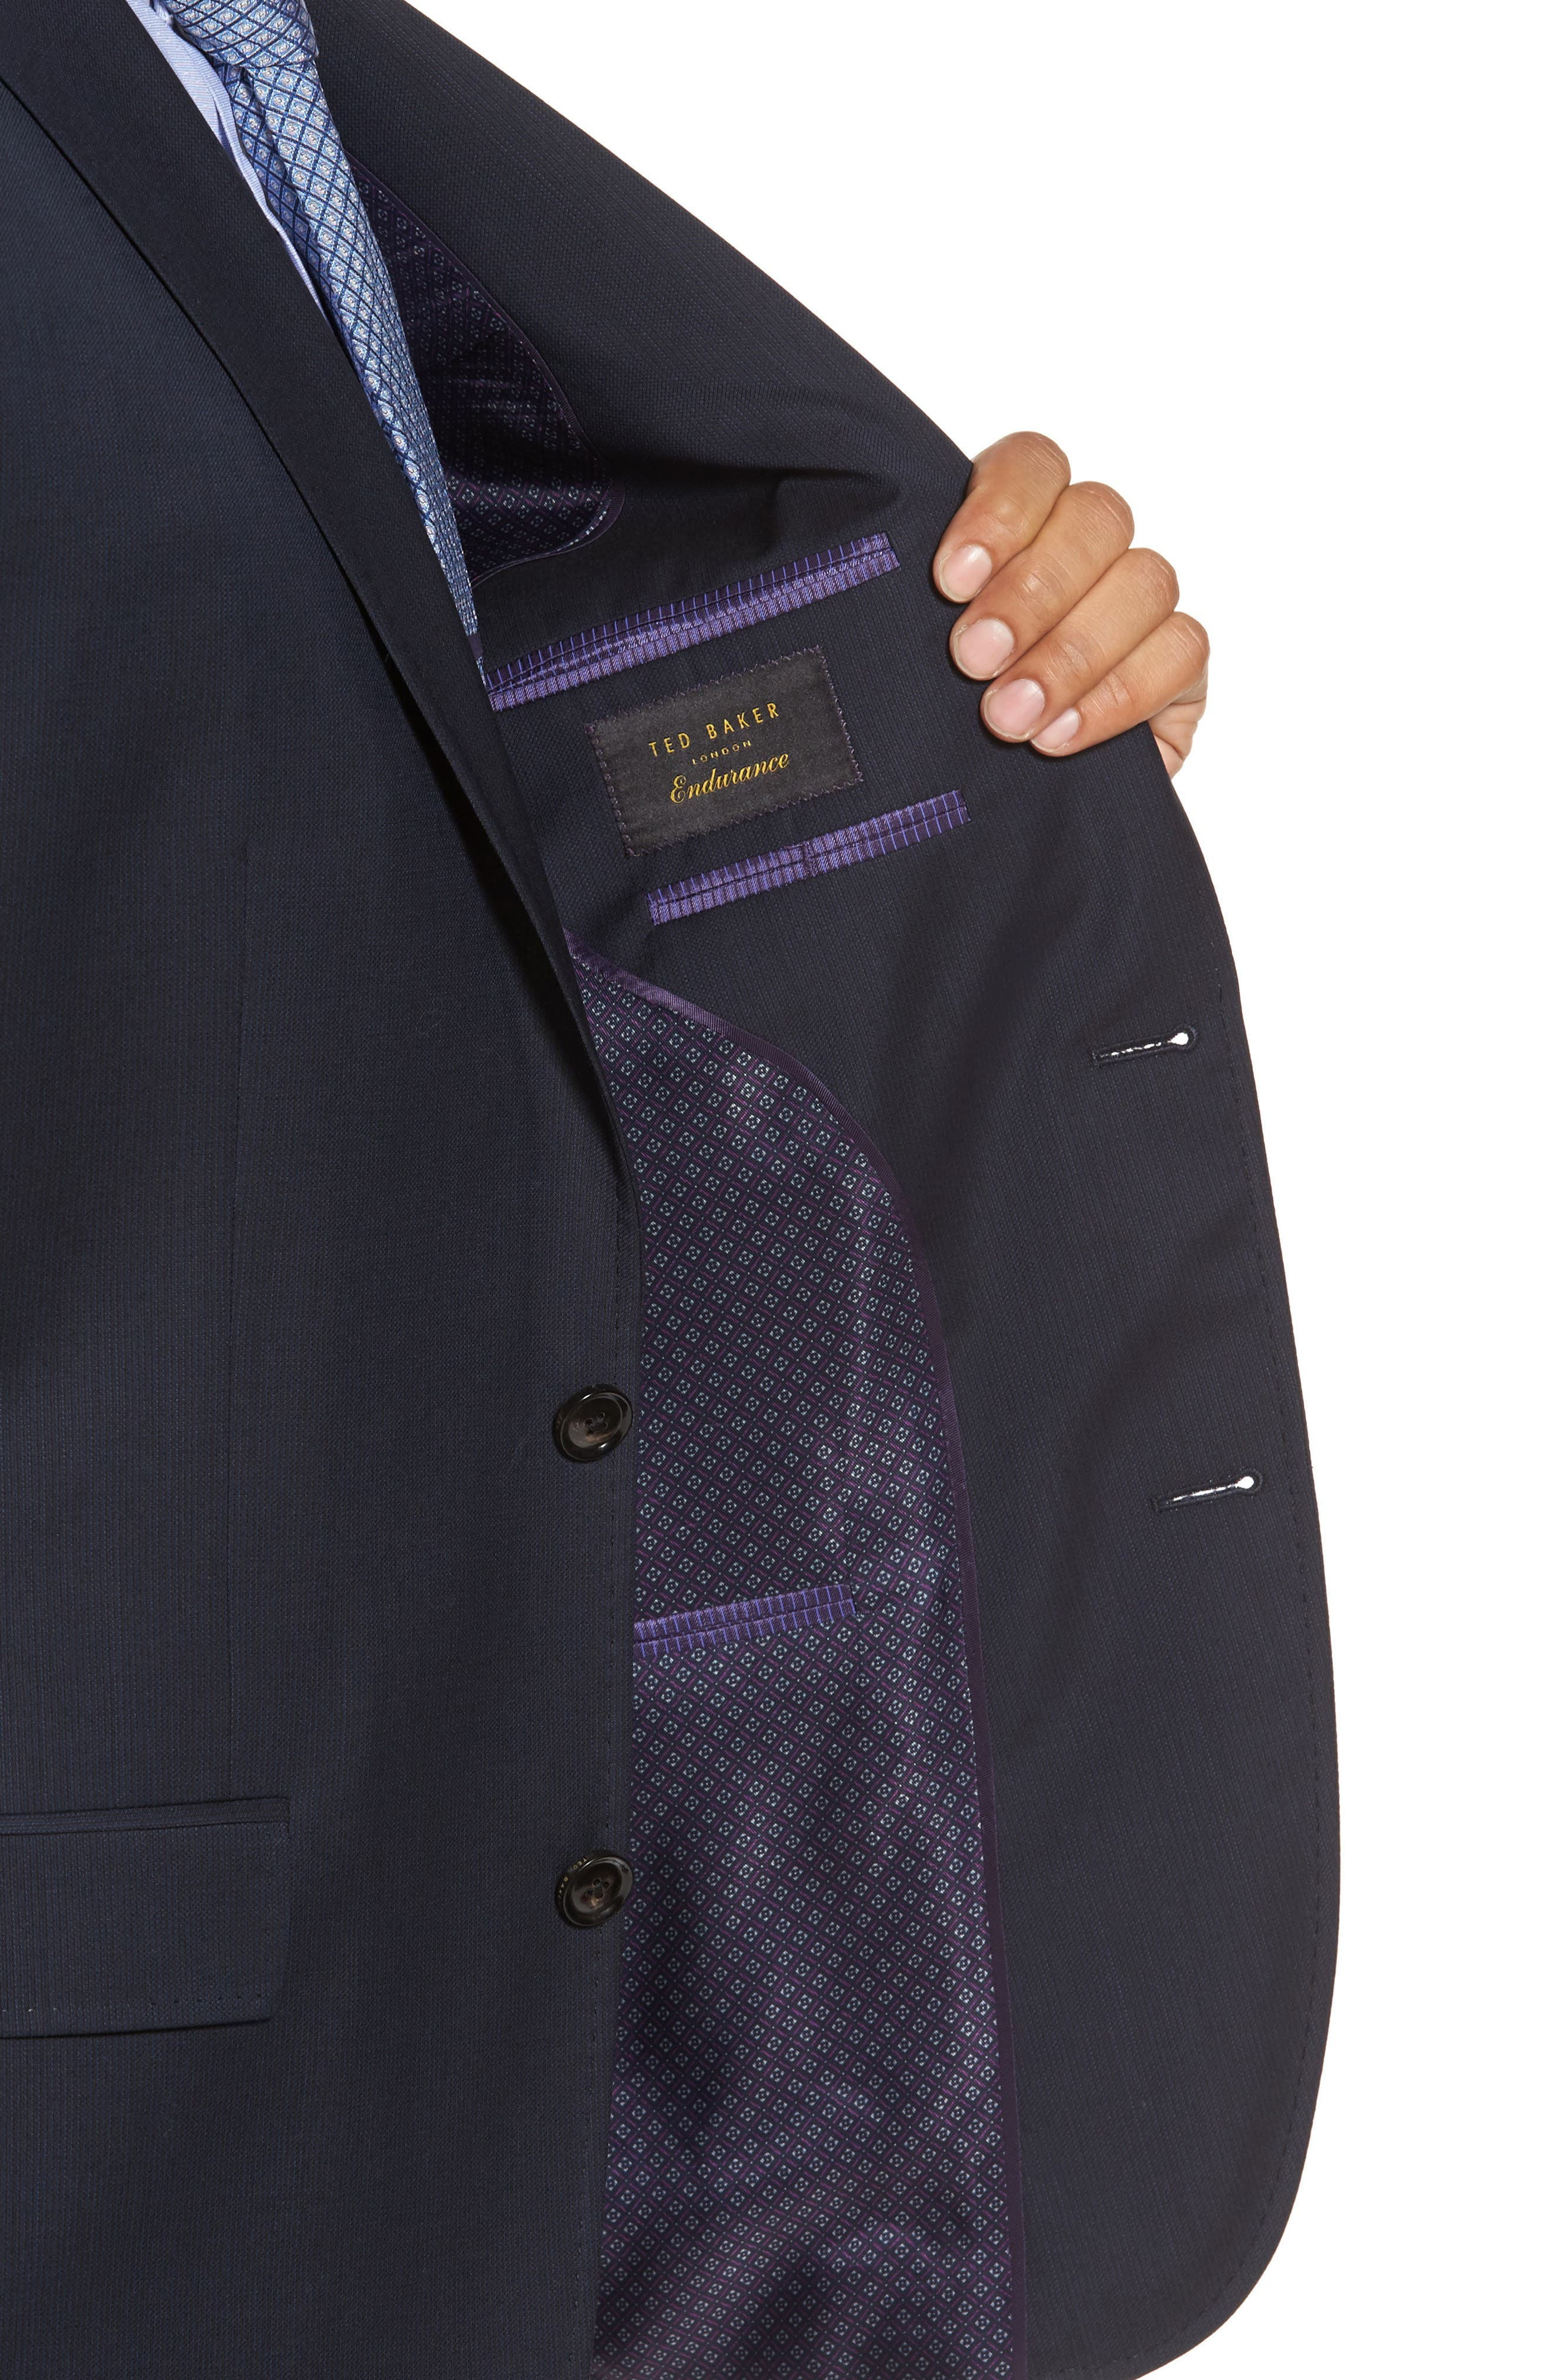 Trim Fit Solid Wool Suit,                             Alternate thumbnail 4, color,